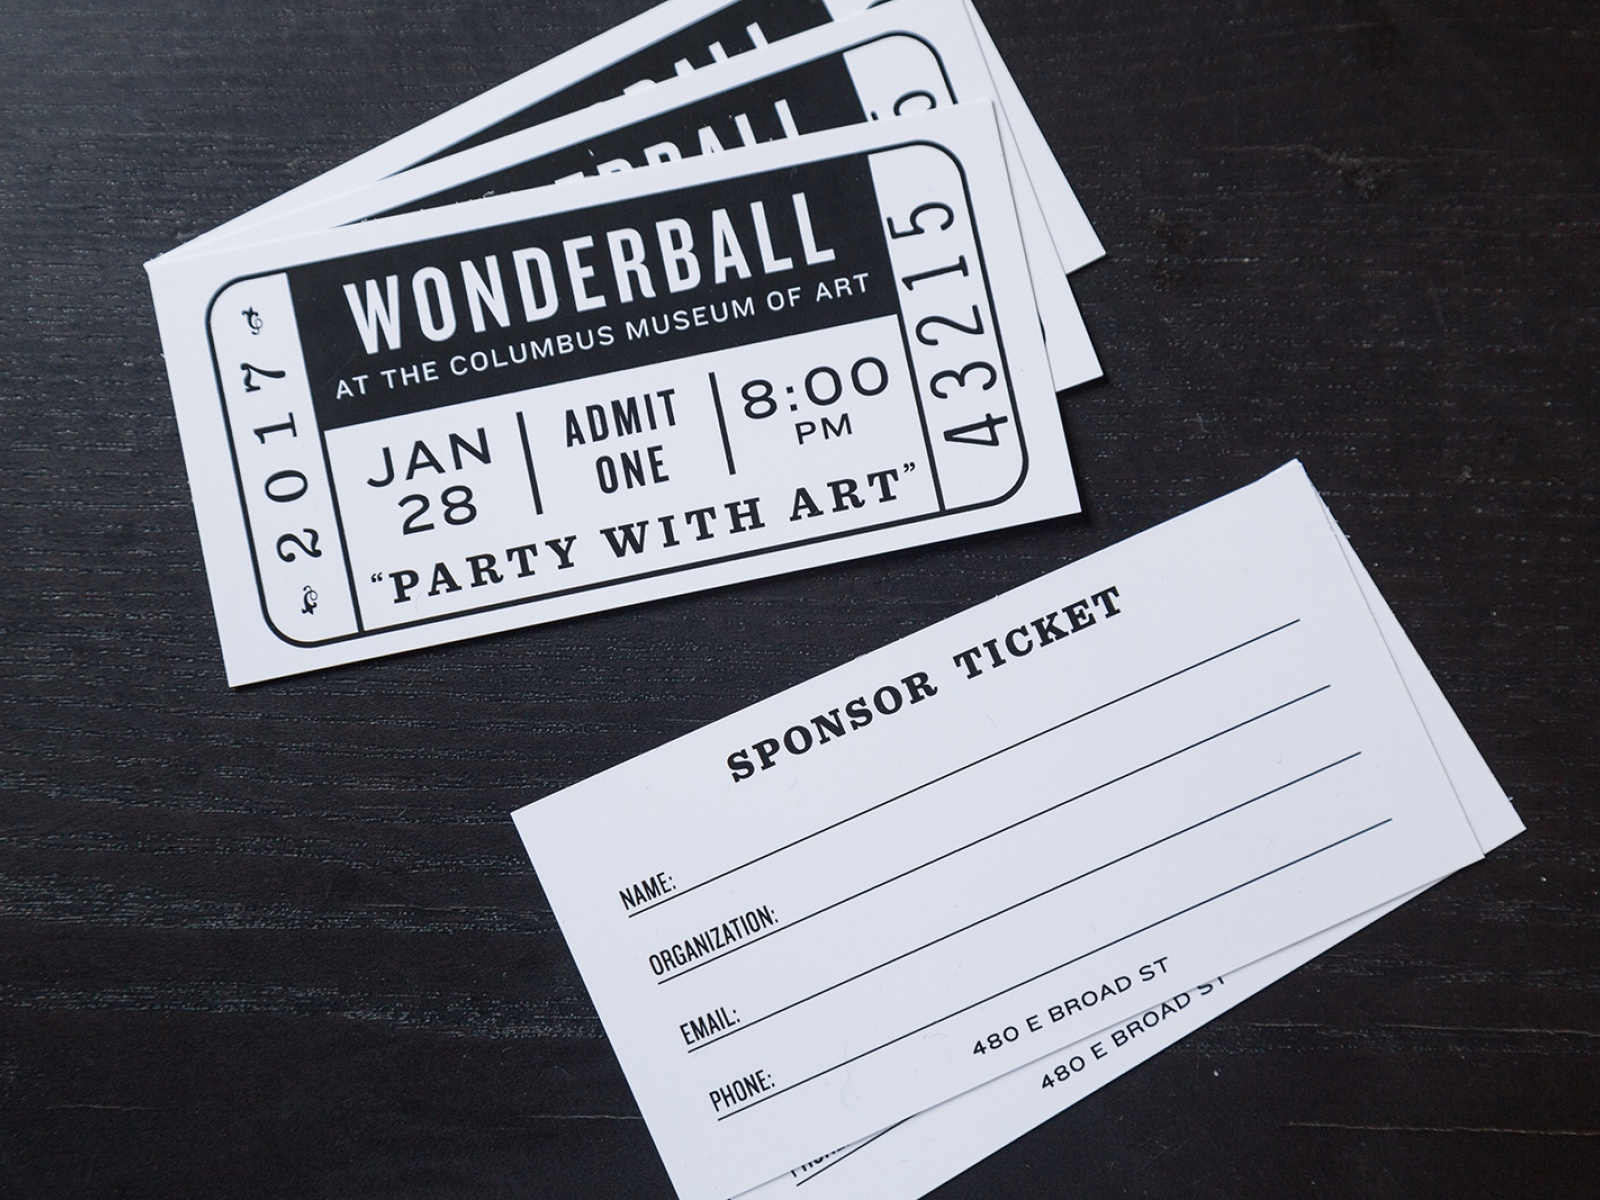 Wonderball 2017 Sponsor Ticket